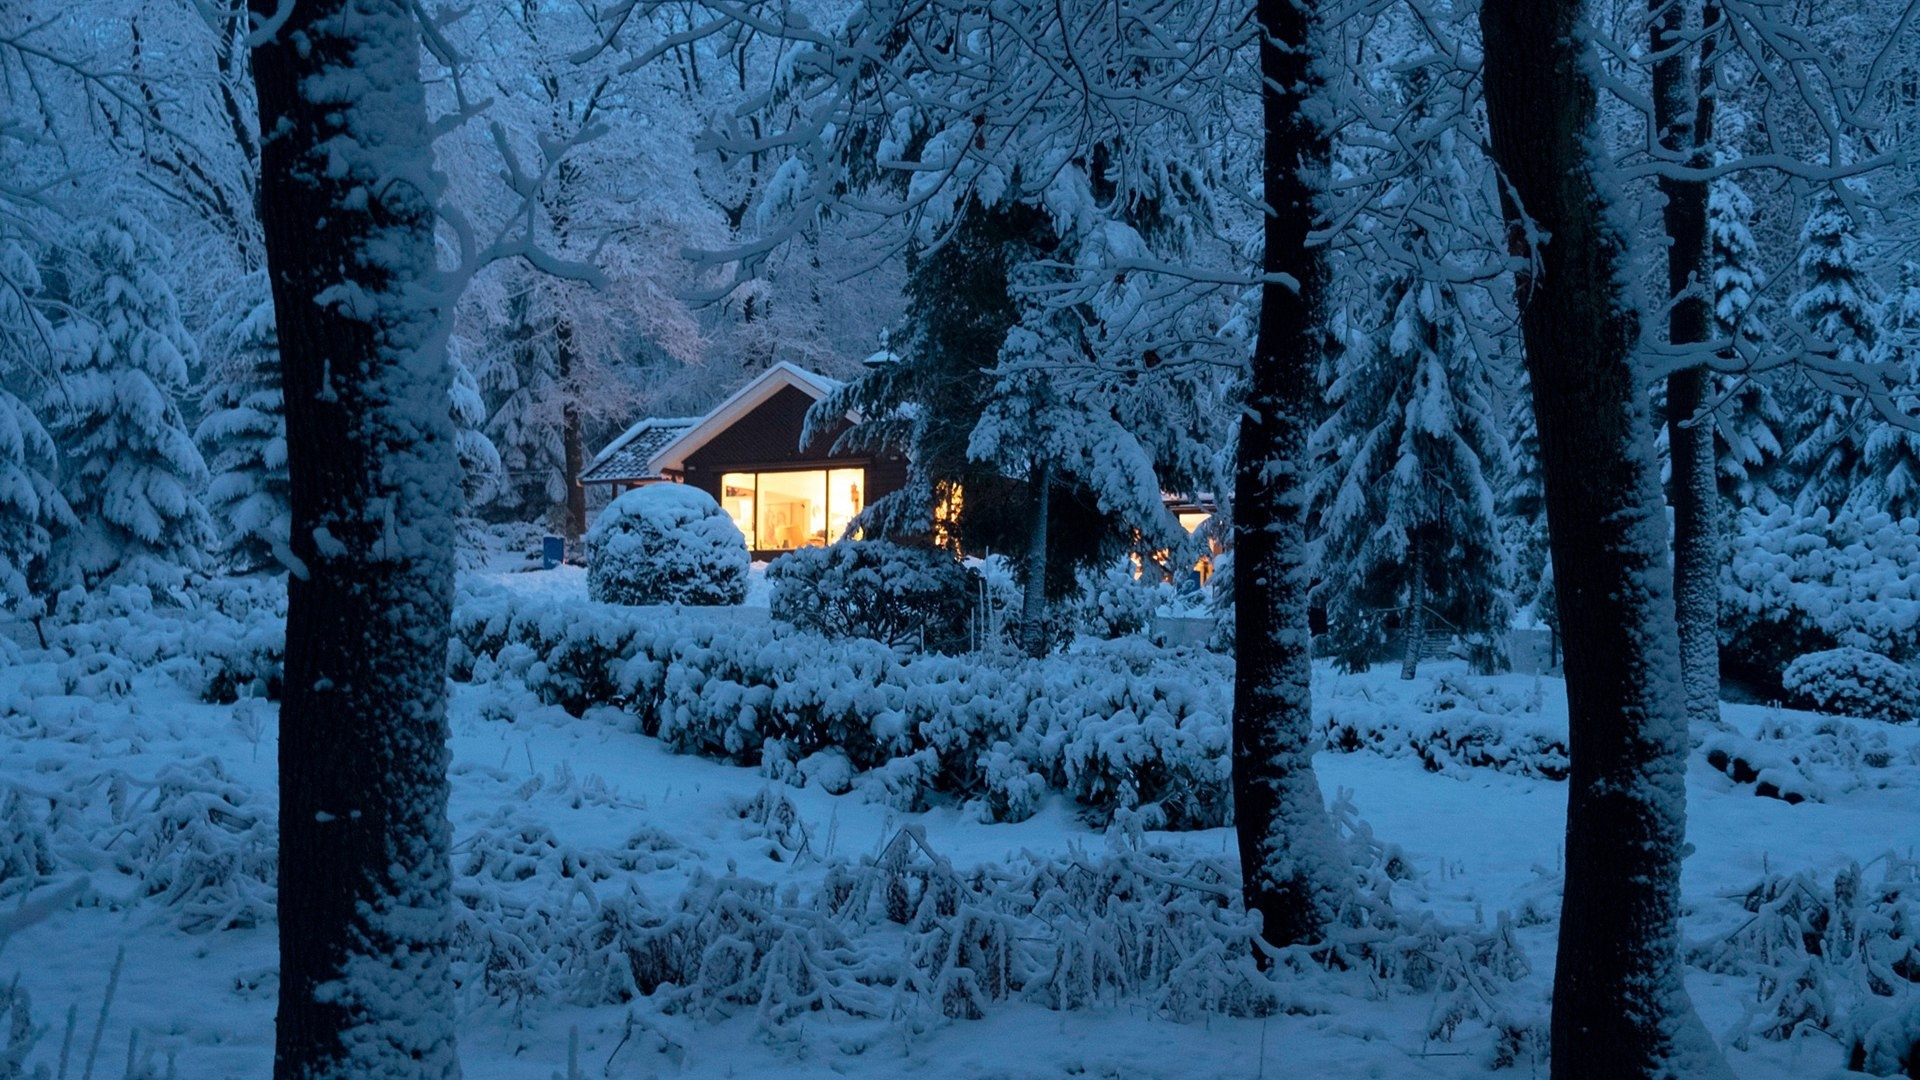 House in a snowy forest wallpaper